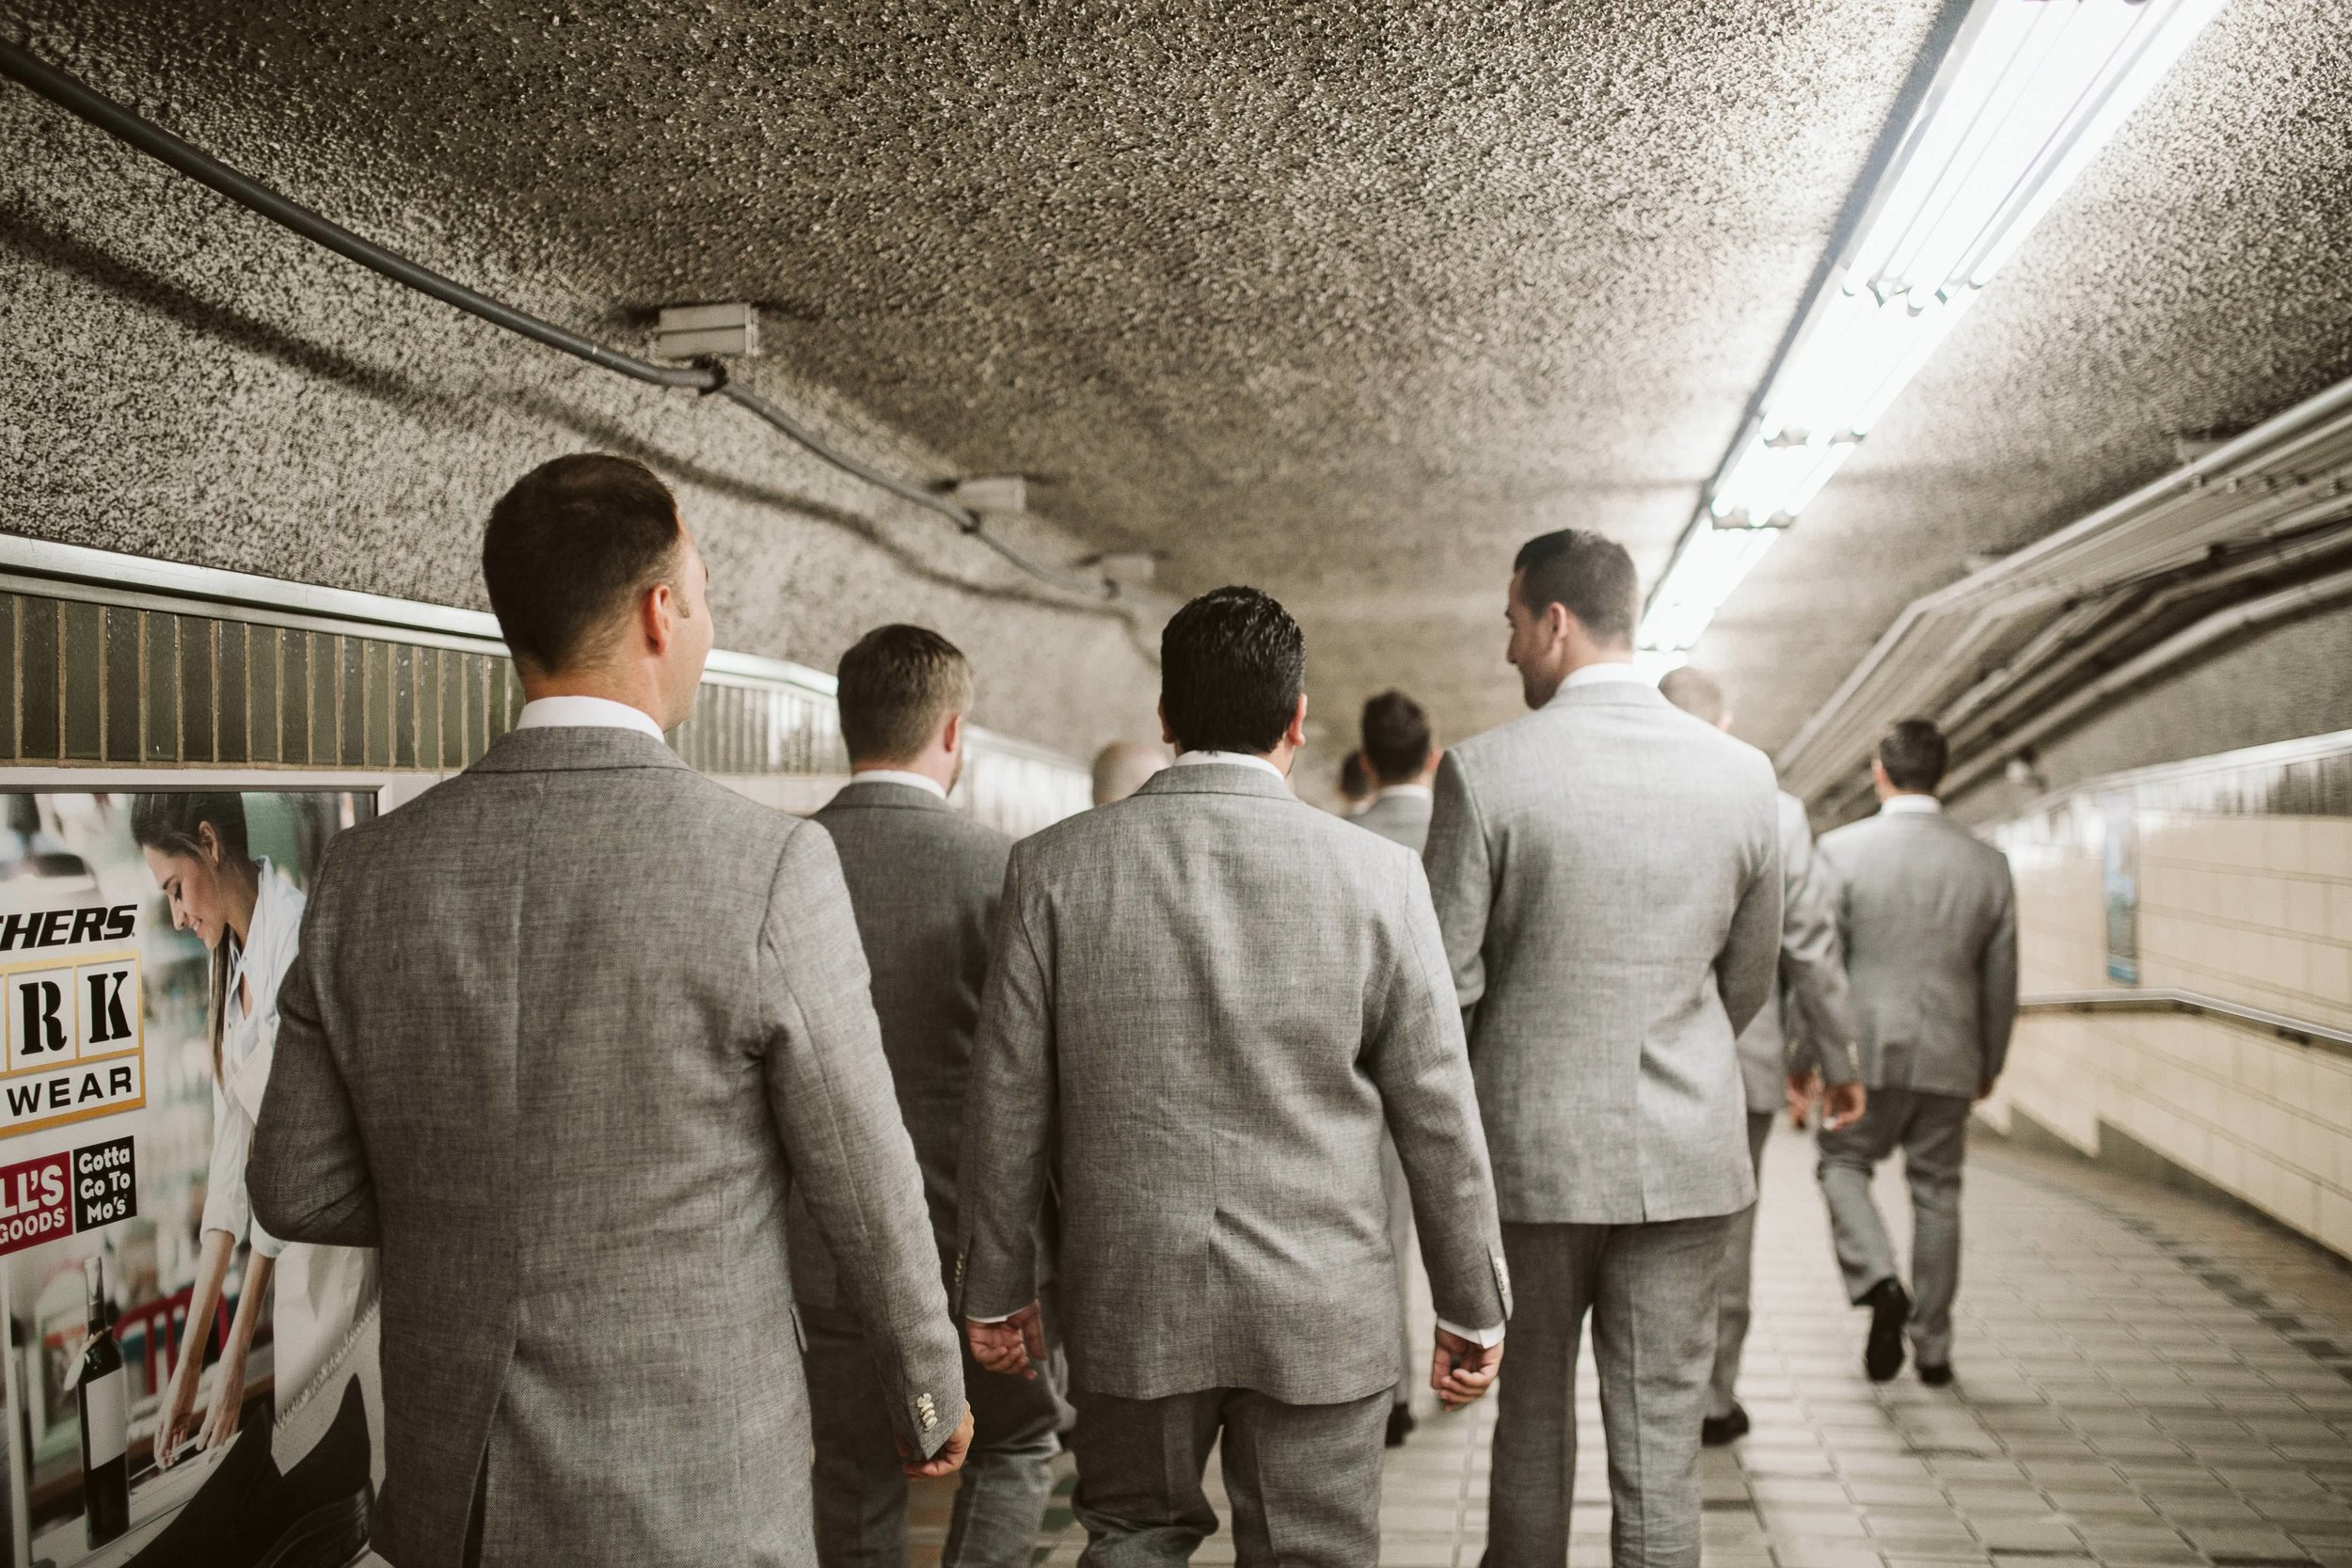 The groom and groomsman walking to the wedding in their gray suits in the Subway at this Battello Wedding in Jersey City, NJ